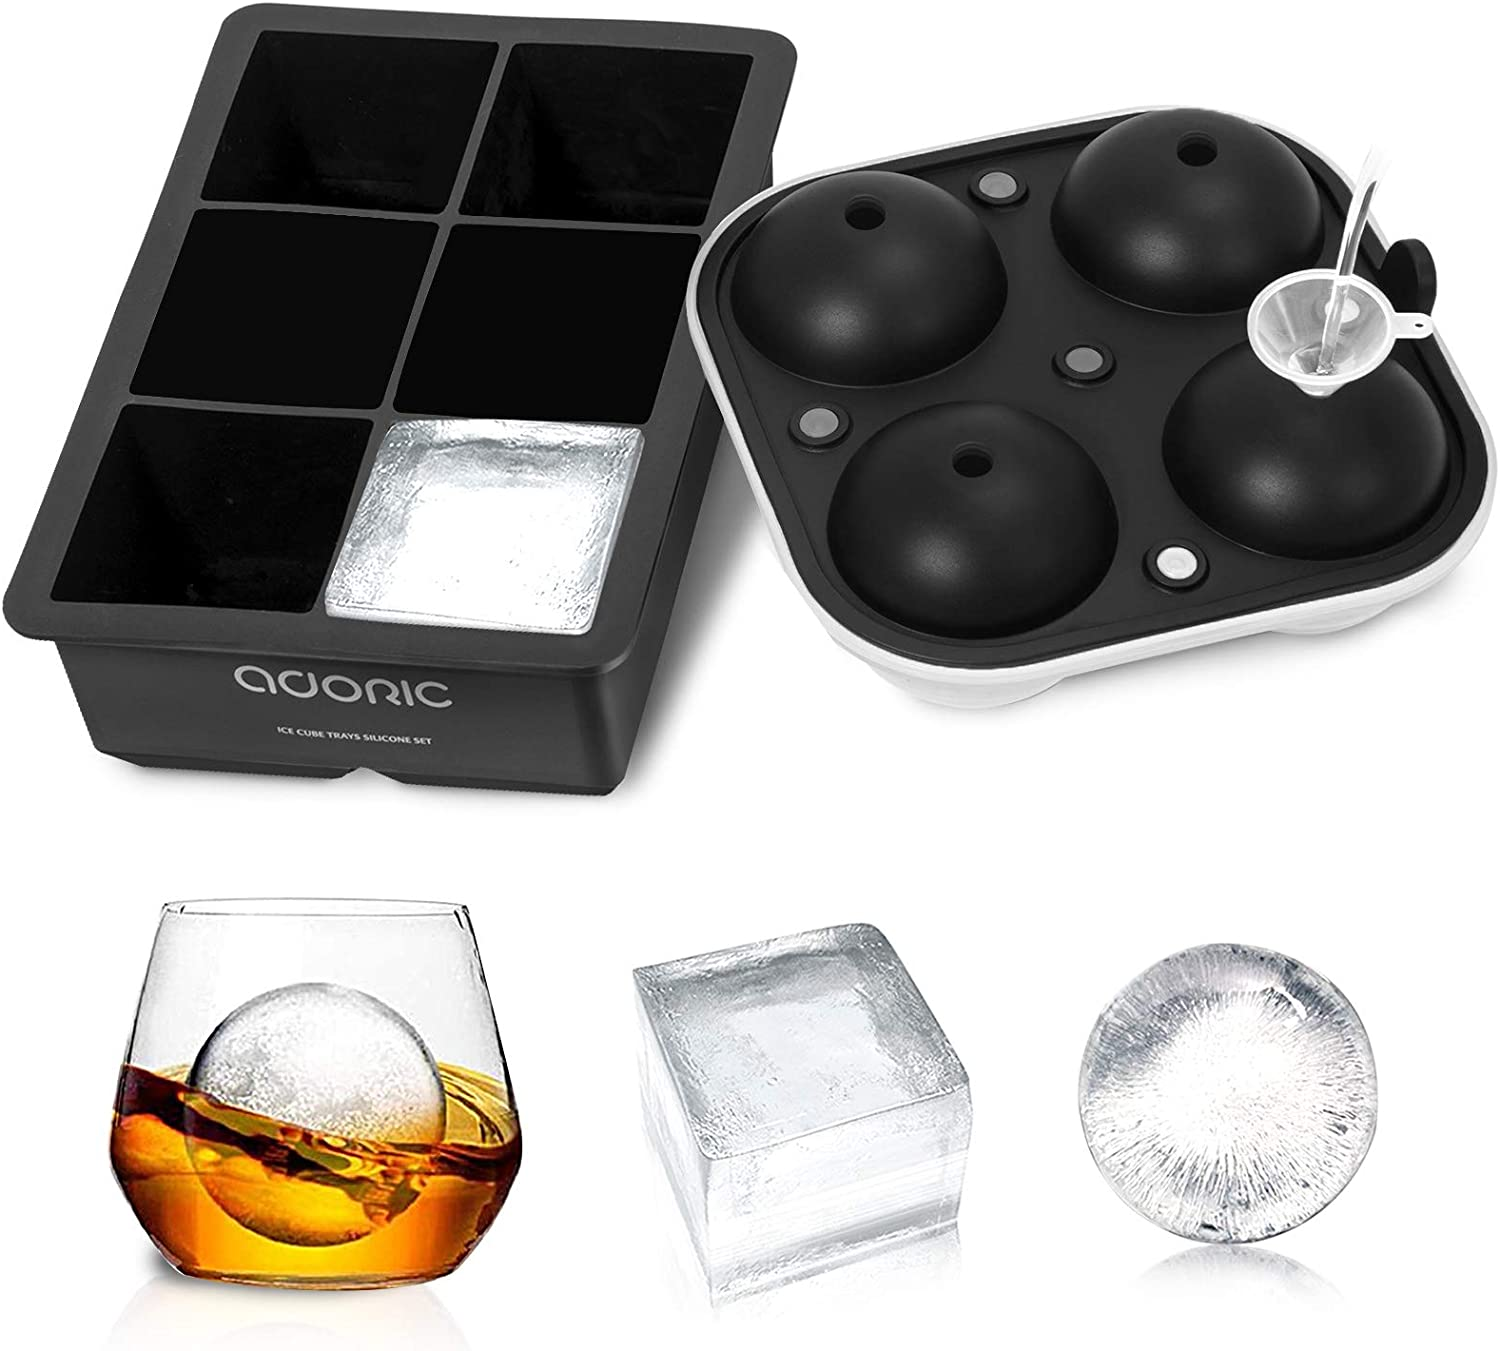 Ice Cube Trays, Adoric Life Ice Tray Silicone Set of 2 with Funnel, Sphere Ice Ball Maker and Large Square Ice Cube Molds for Whiskey, Reusable and BPA Free